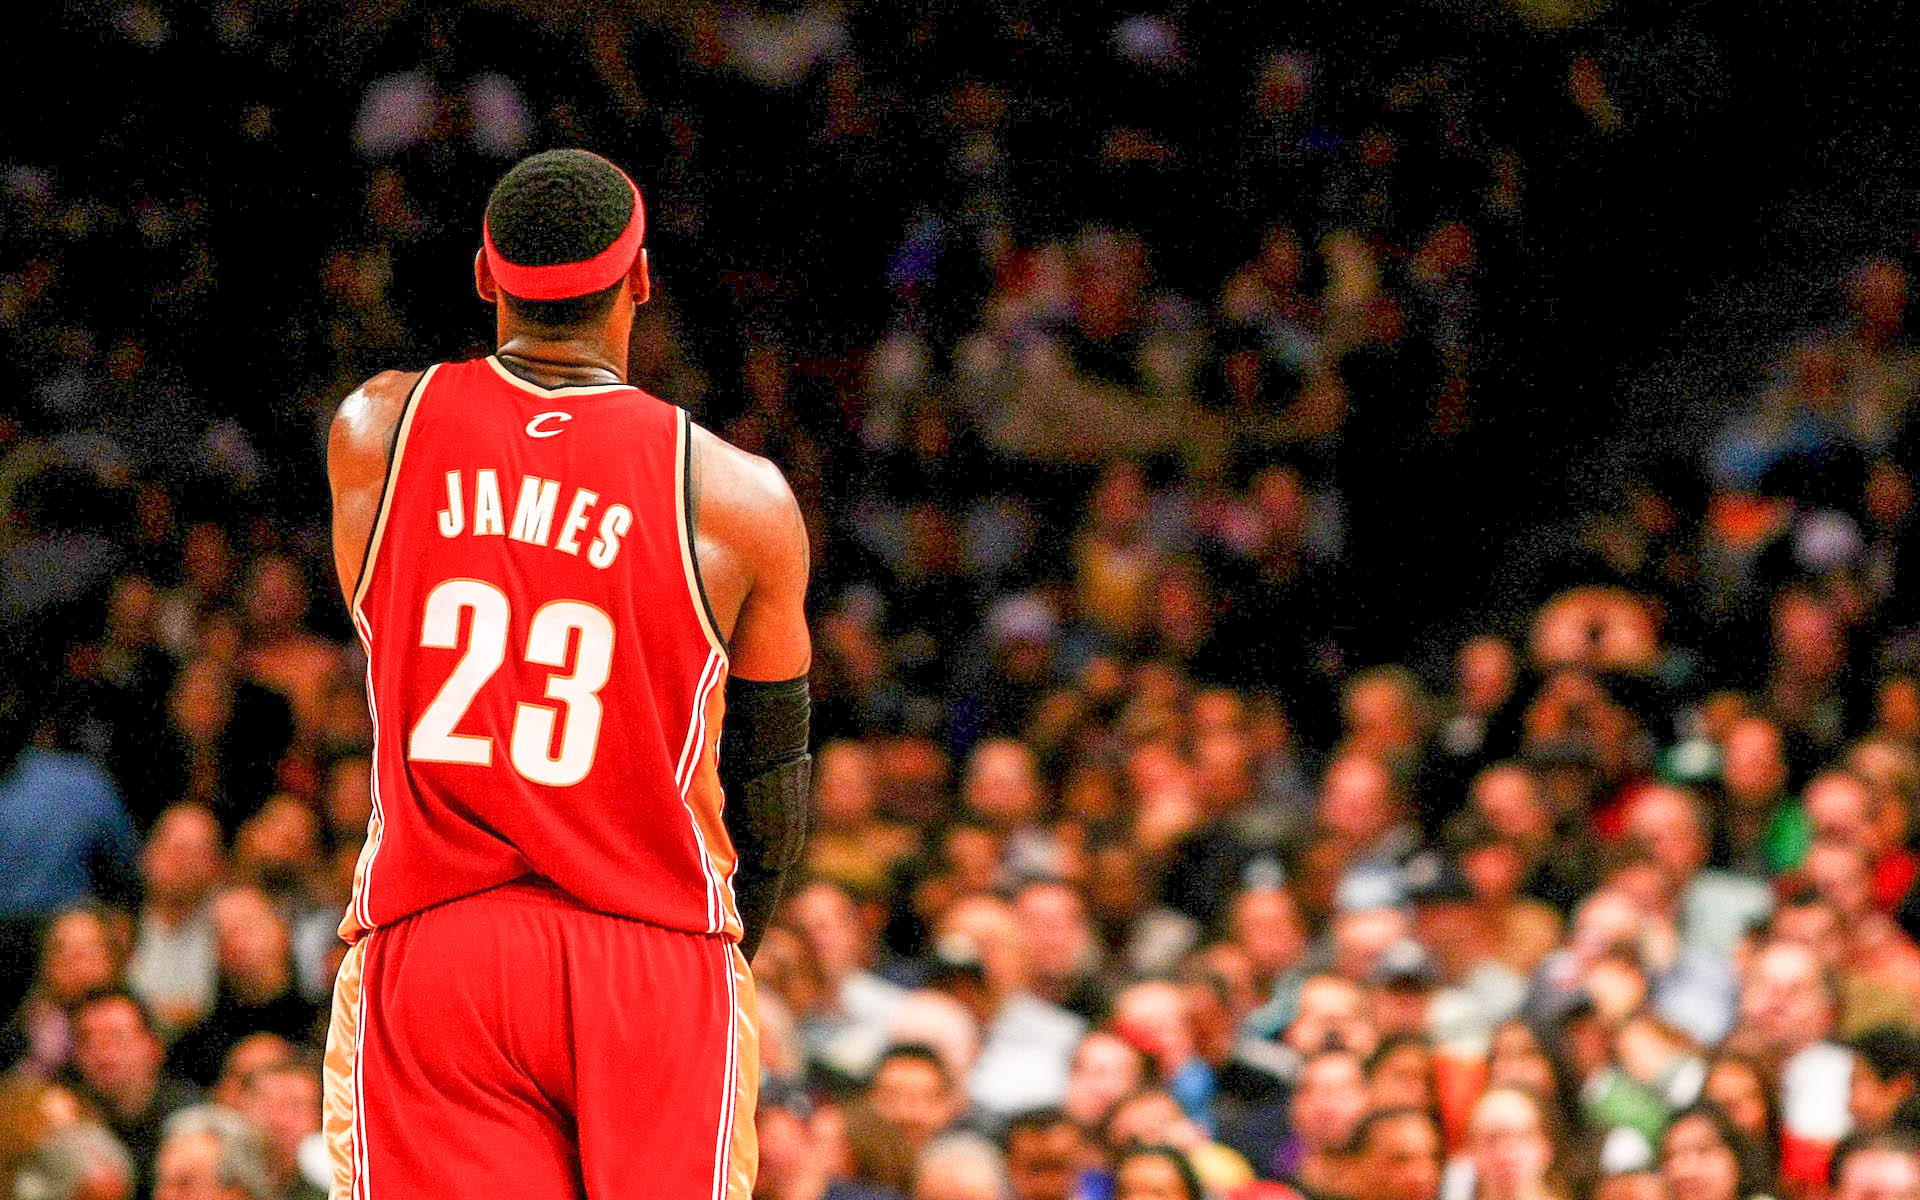 Lebron James Awesome Hd Wallpapers All Hd Wallpapers